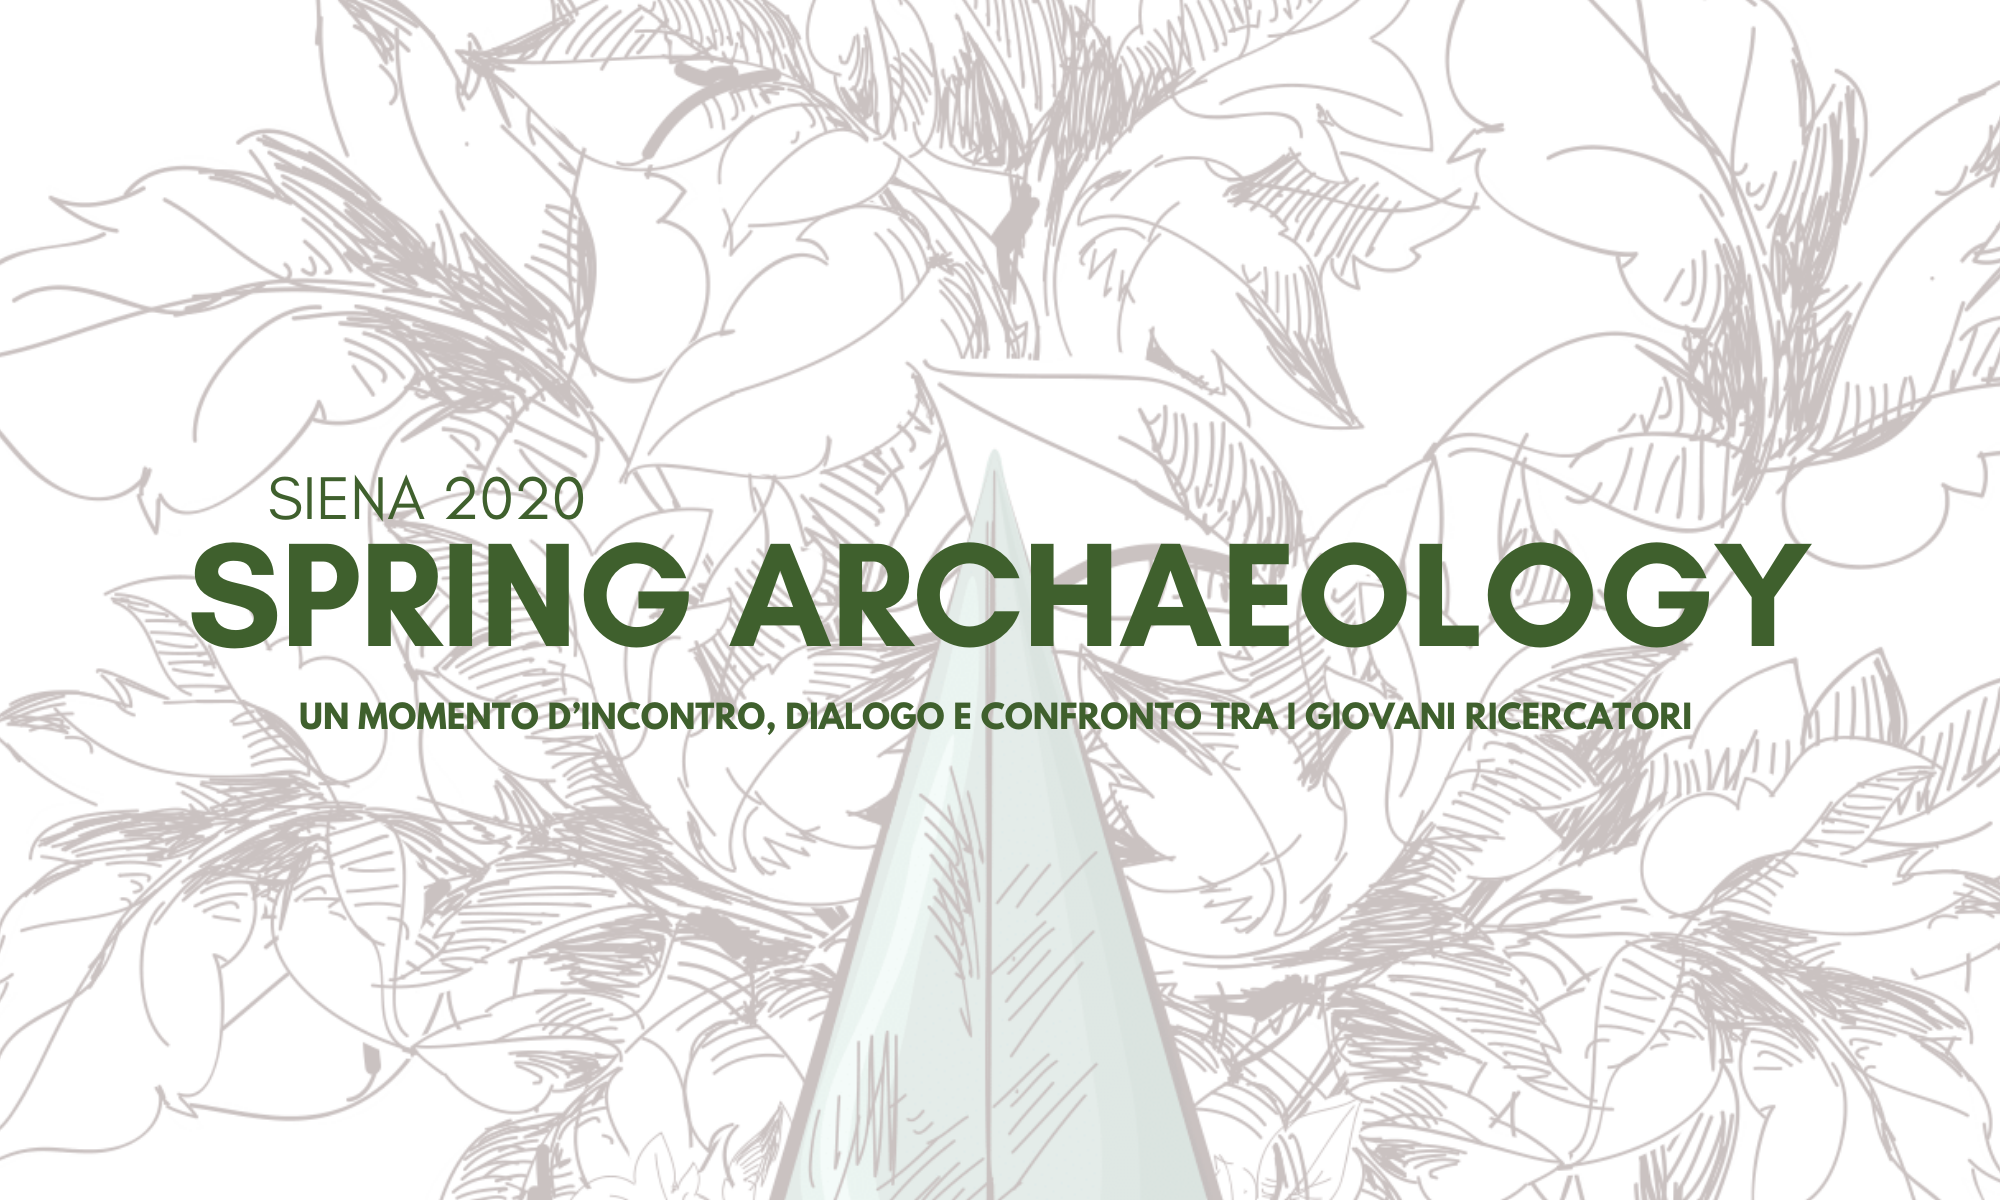 Spring Archaeology